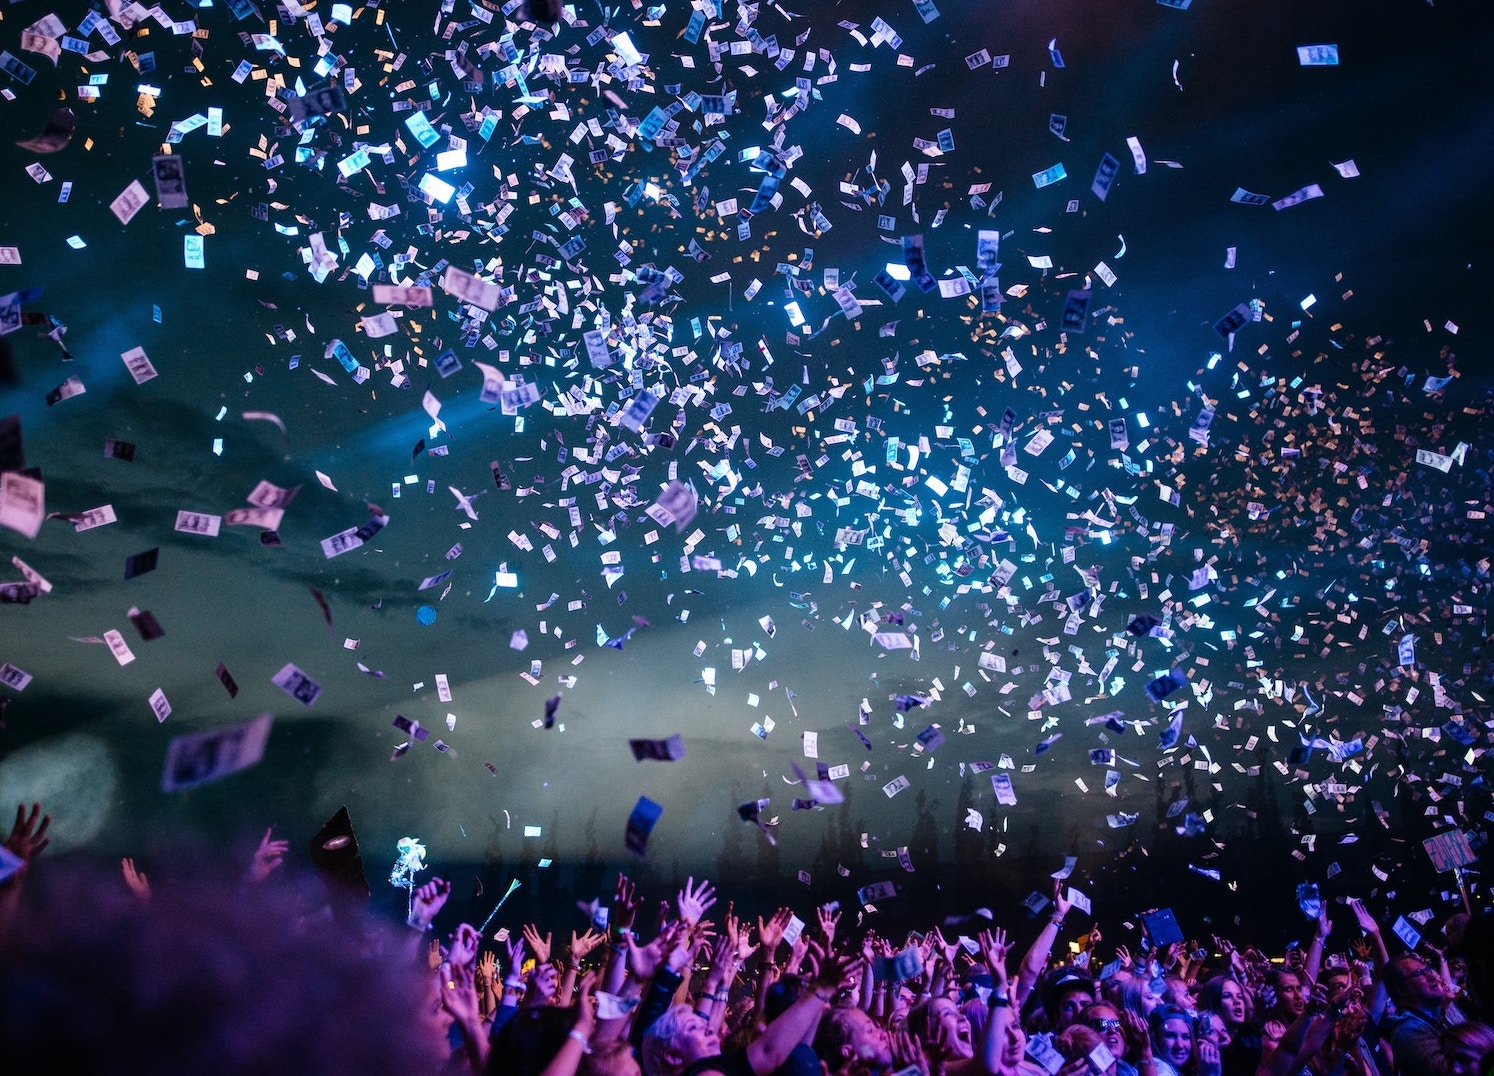 People standing below confetti flying in the air